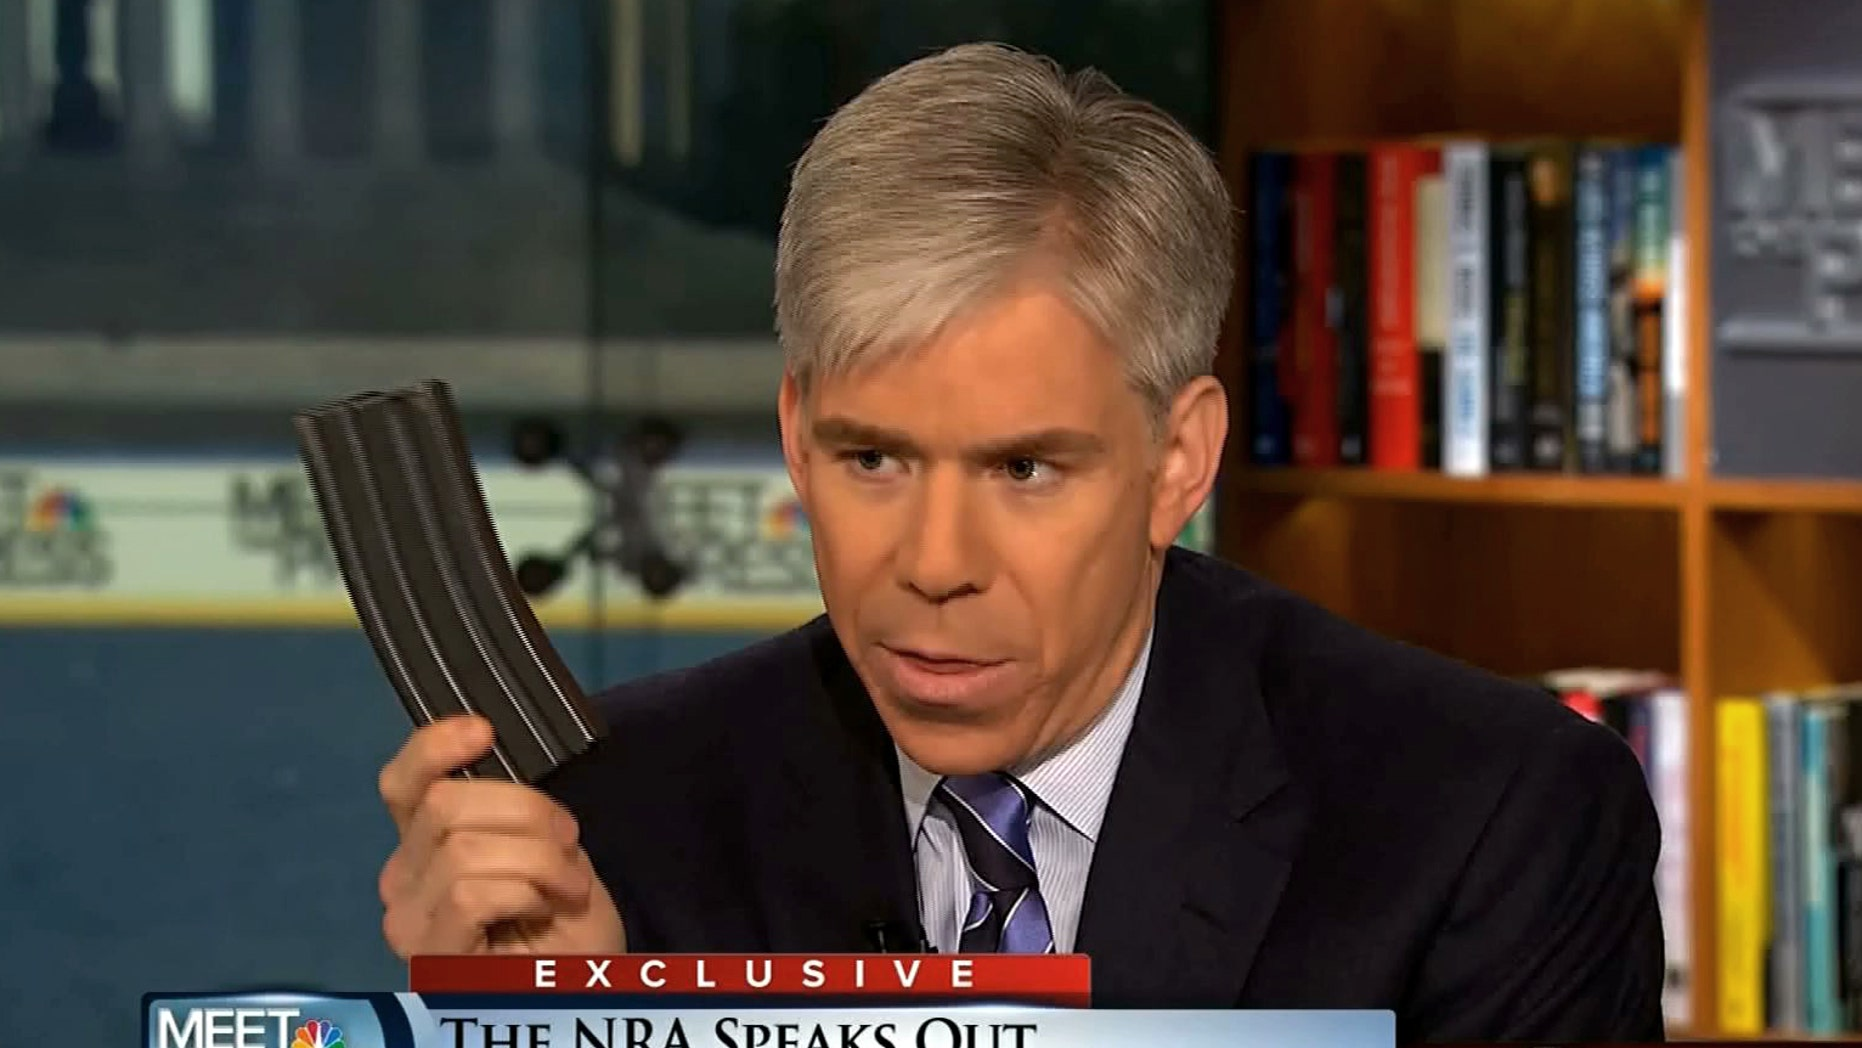 """This image made from video provided by NBC's """"Meet the Press"""" shows host David Gregory holding what he described as a high-capacity ammunition magazine during the taping of the Sunday, Dec. 23, 2012 program. He was interviewing National Rifle Association executive vice president Wayne LaPierre and used the magazine as a prop while discussing gun control. Gregory won't face charges for possession of a high-capacity magazine D.C. prosecutors announced Friday, Jan. 11, 2013 saying criminal charges wouldn't serve the public's best interests. (AP Photo/Meet the Press)"""